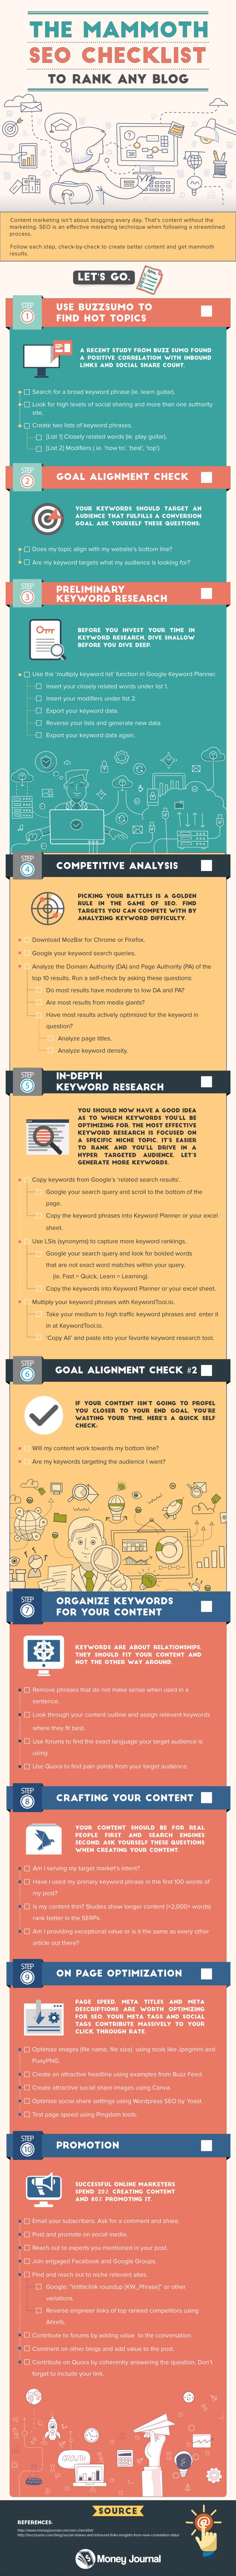 Blog SEO Checklist: 74 Steps for Ridiculously Good Google Rankings